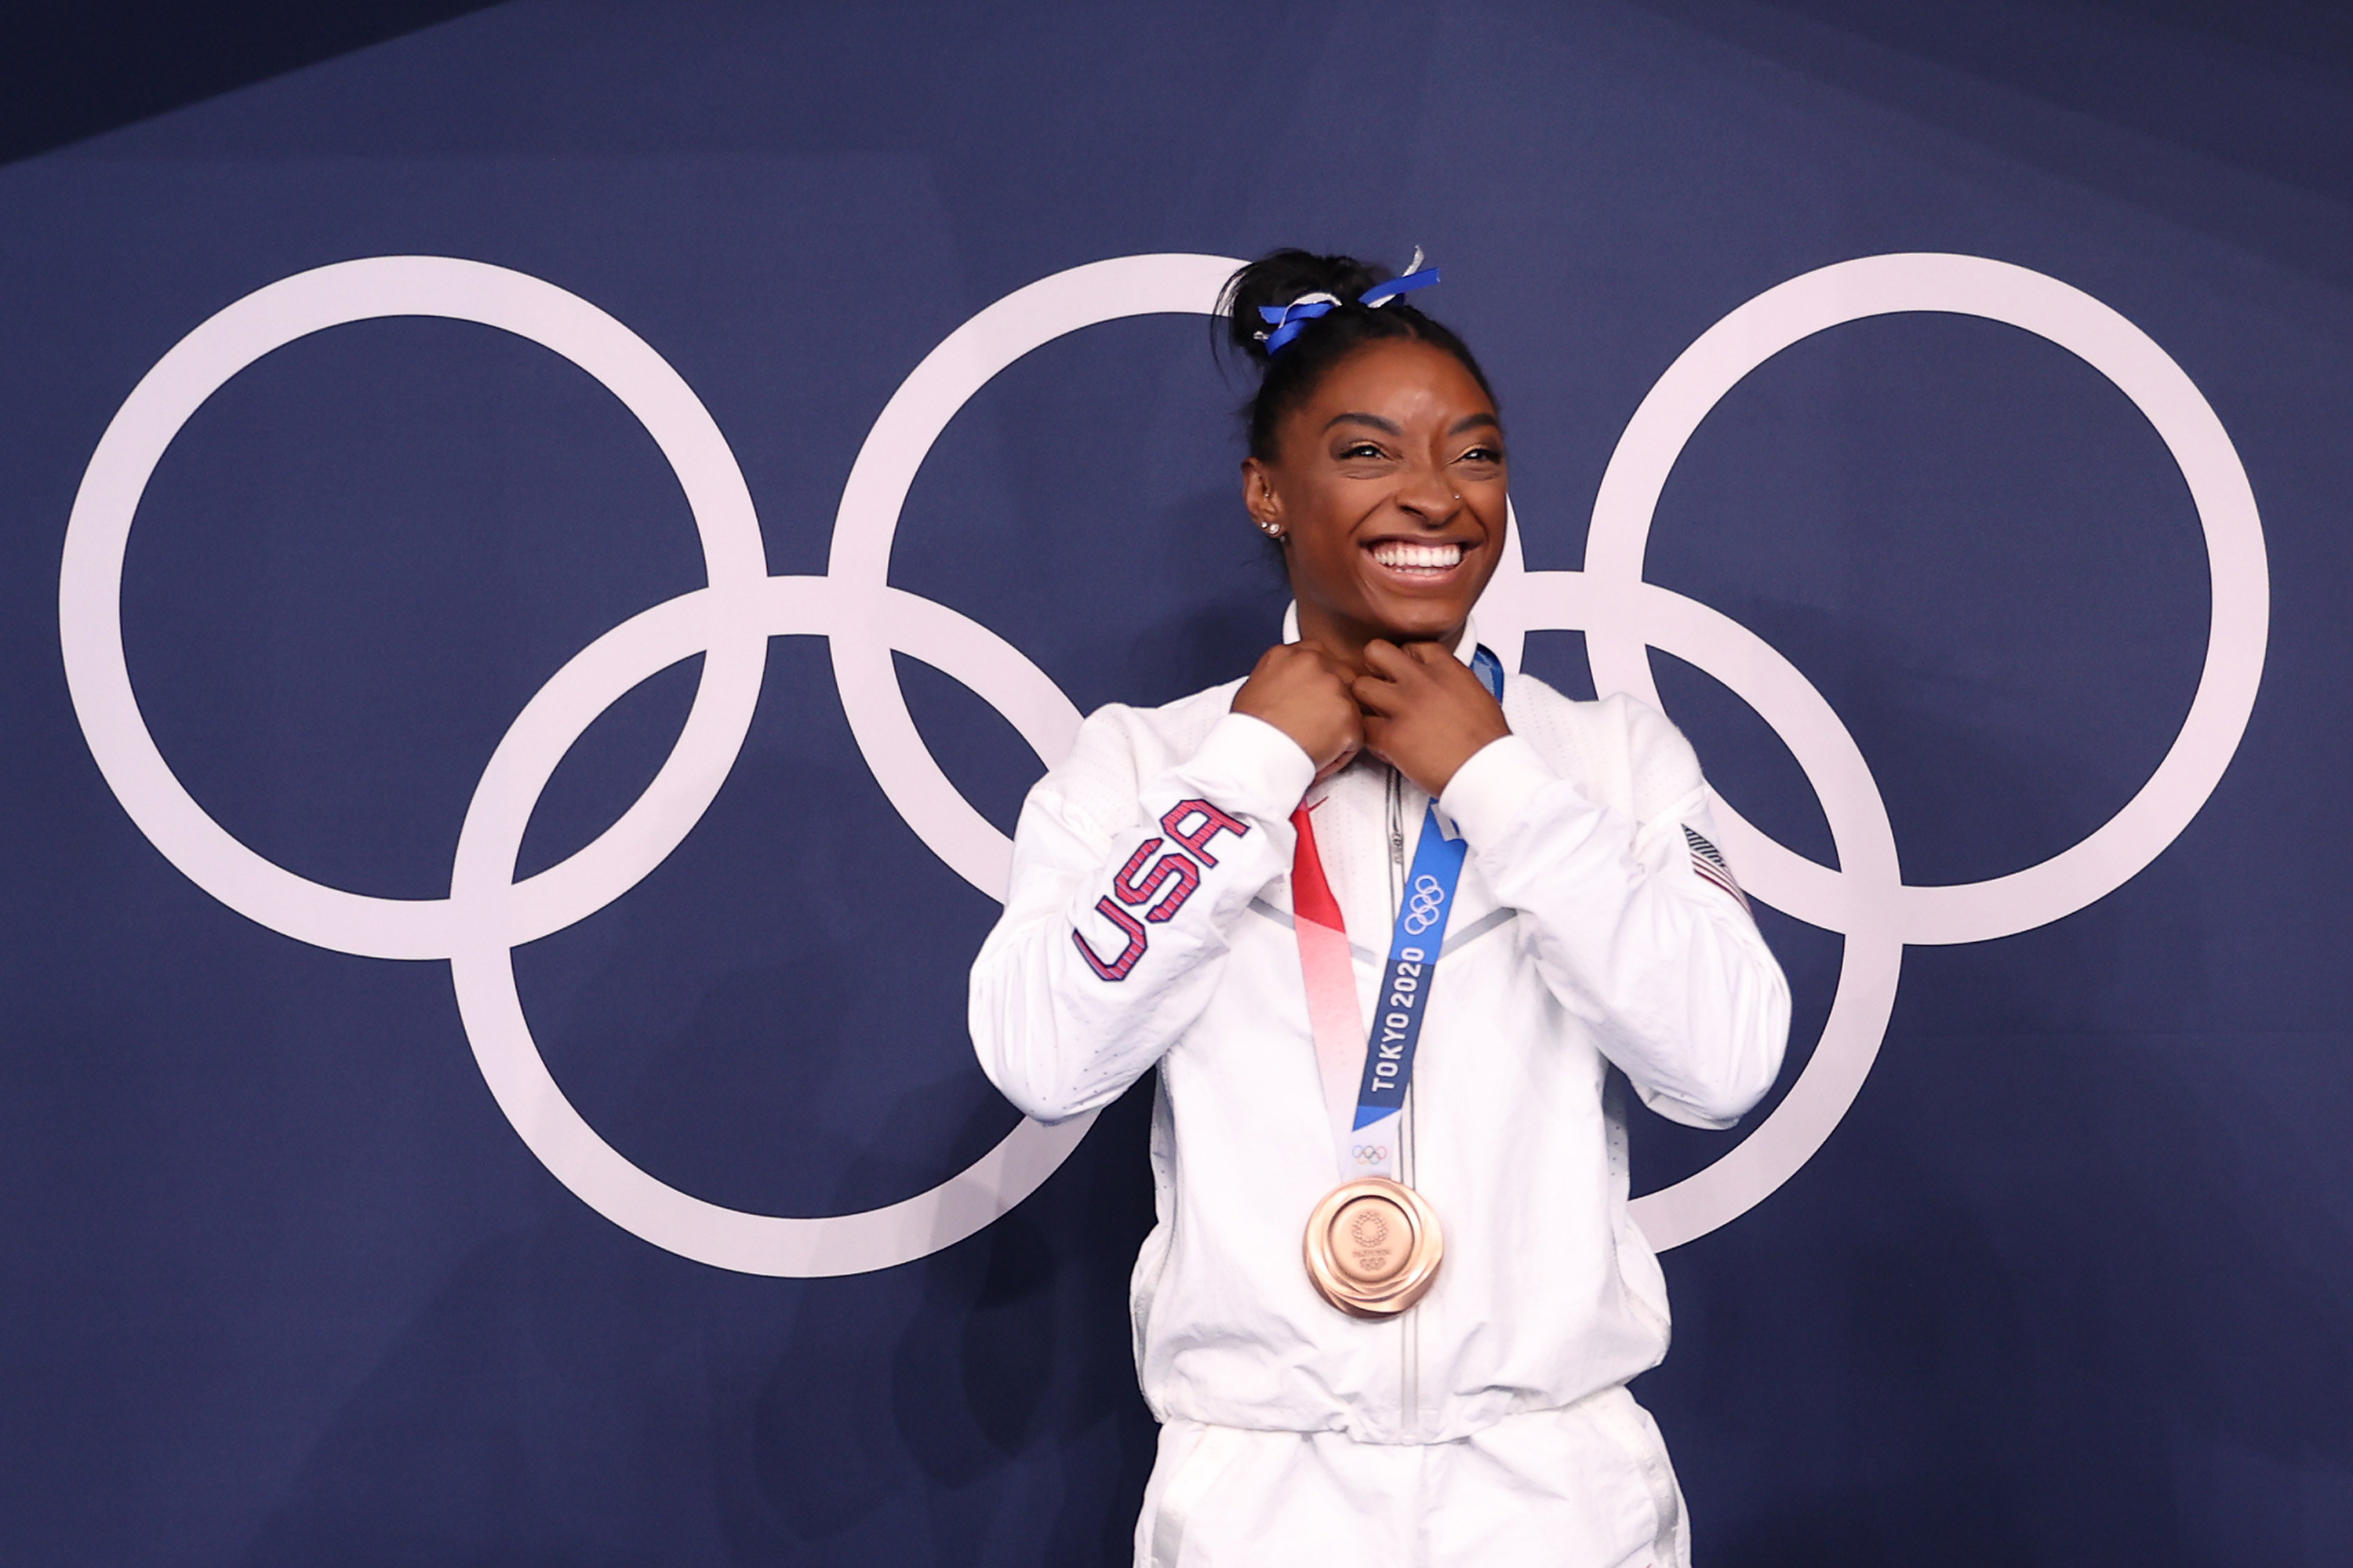 Biles poses in front of the Olympic rings with her bronze medal around her neck